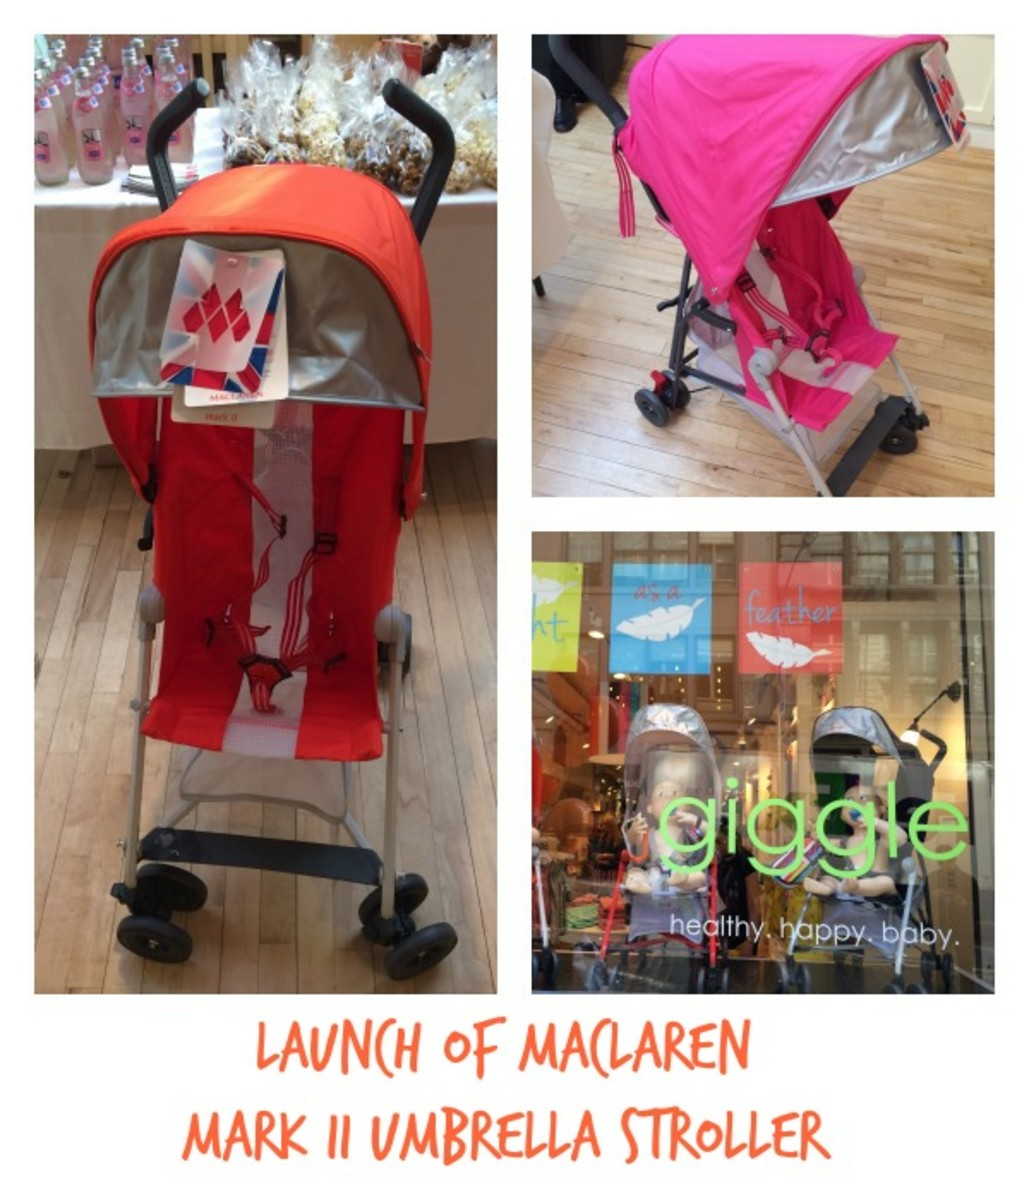 Launch of Maclaren Mark II Umbrella Stroller.jpg.jpg